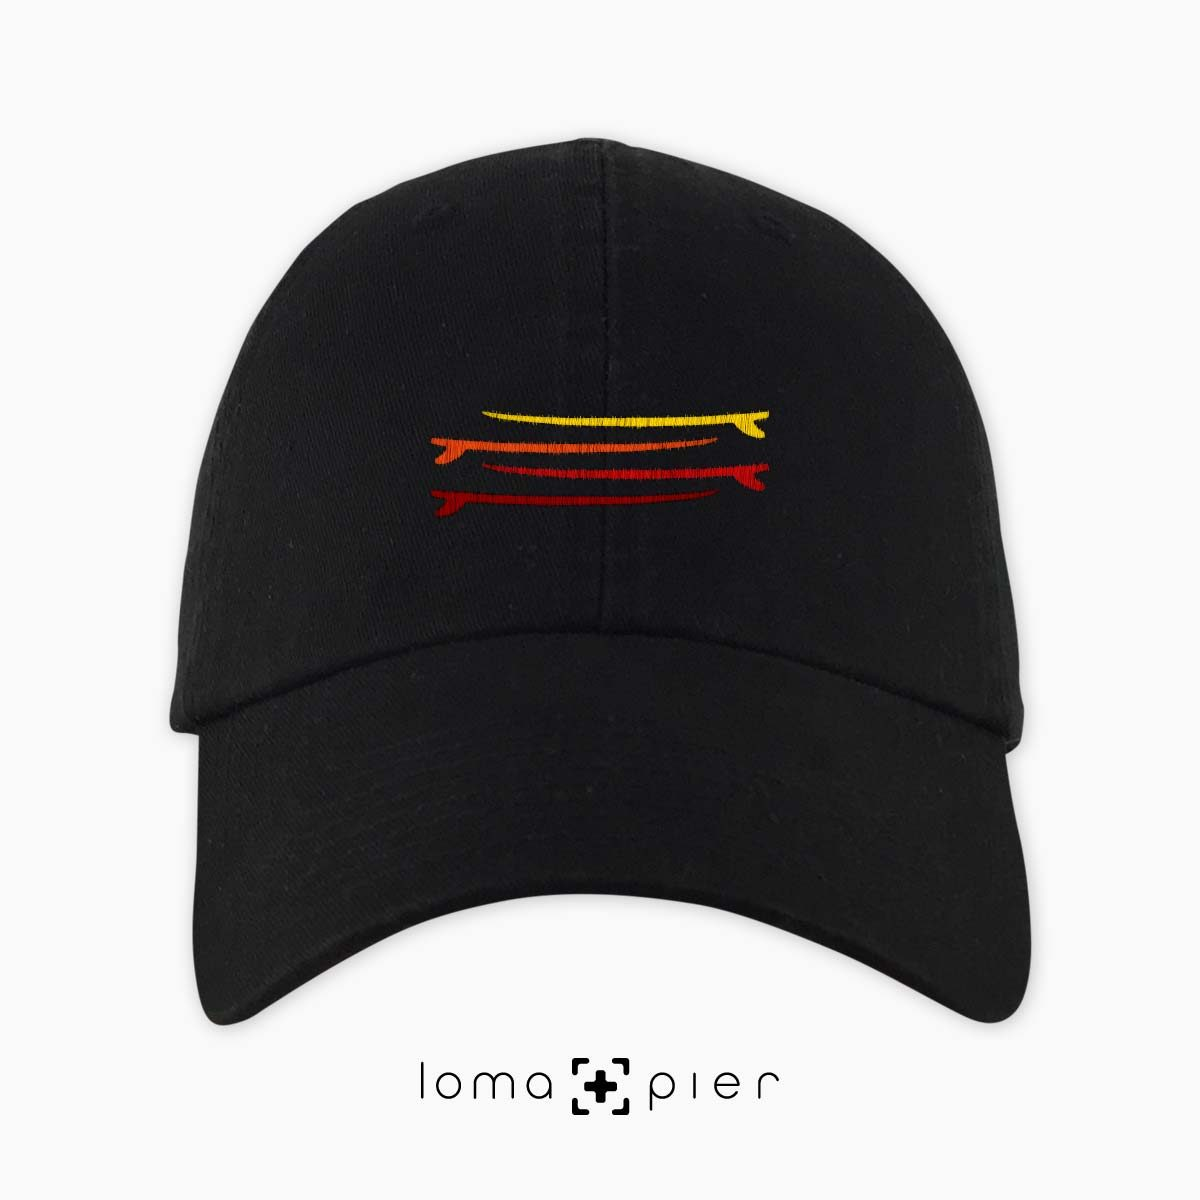 SURFBOARDS STACKED icon embroidered on a black dad hat by loma+pier hat store made in the USA